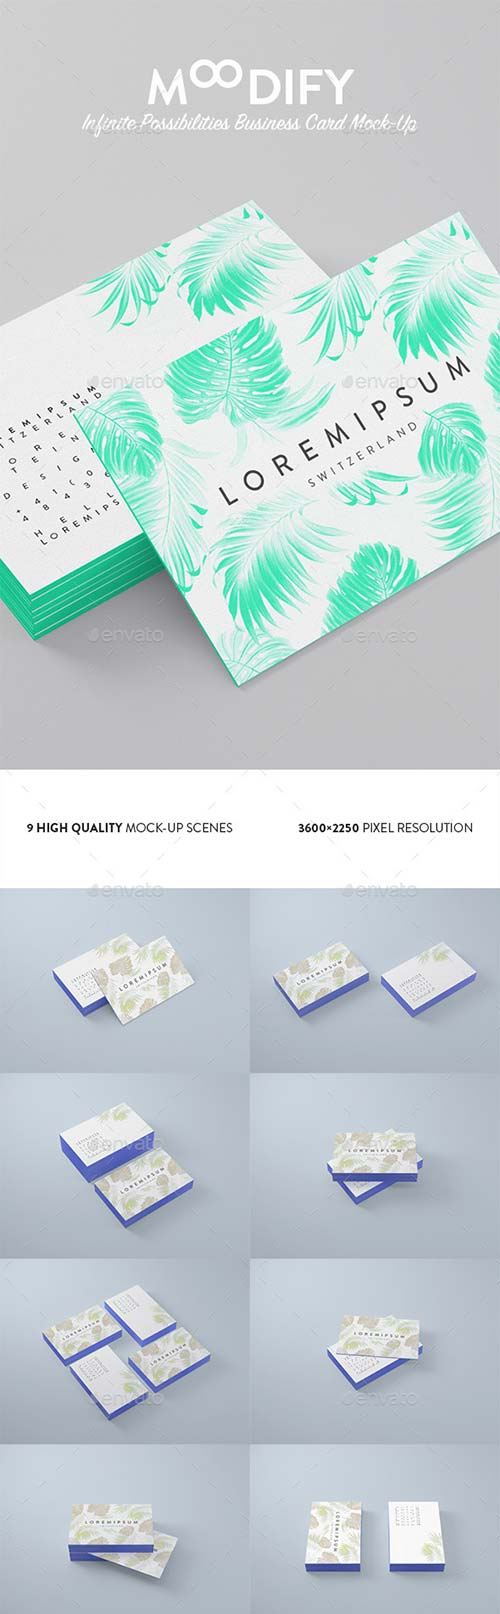 GraphicRiver Moodify / Infinite Possibilities Card Mock-Up